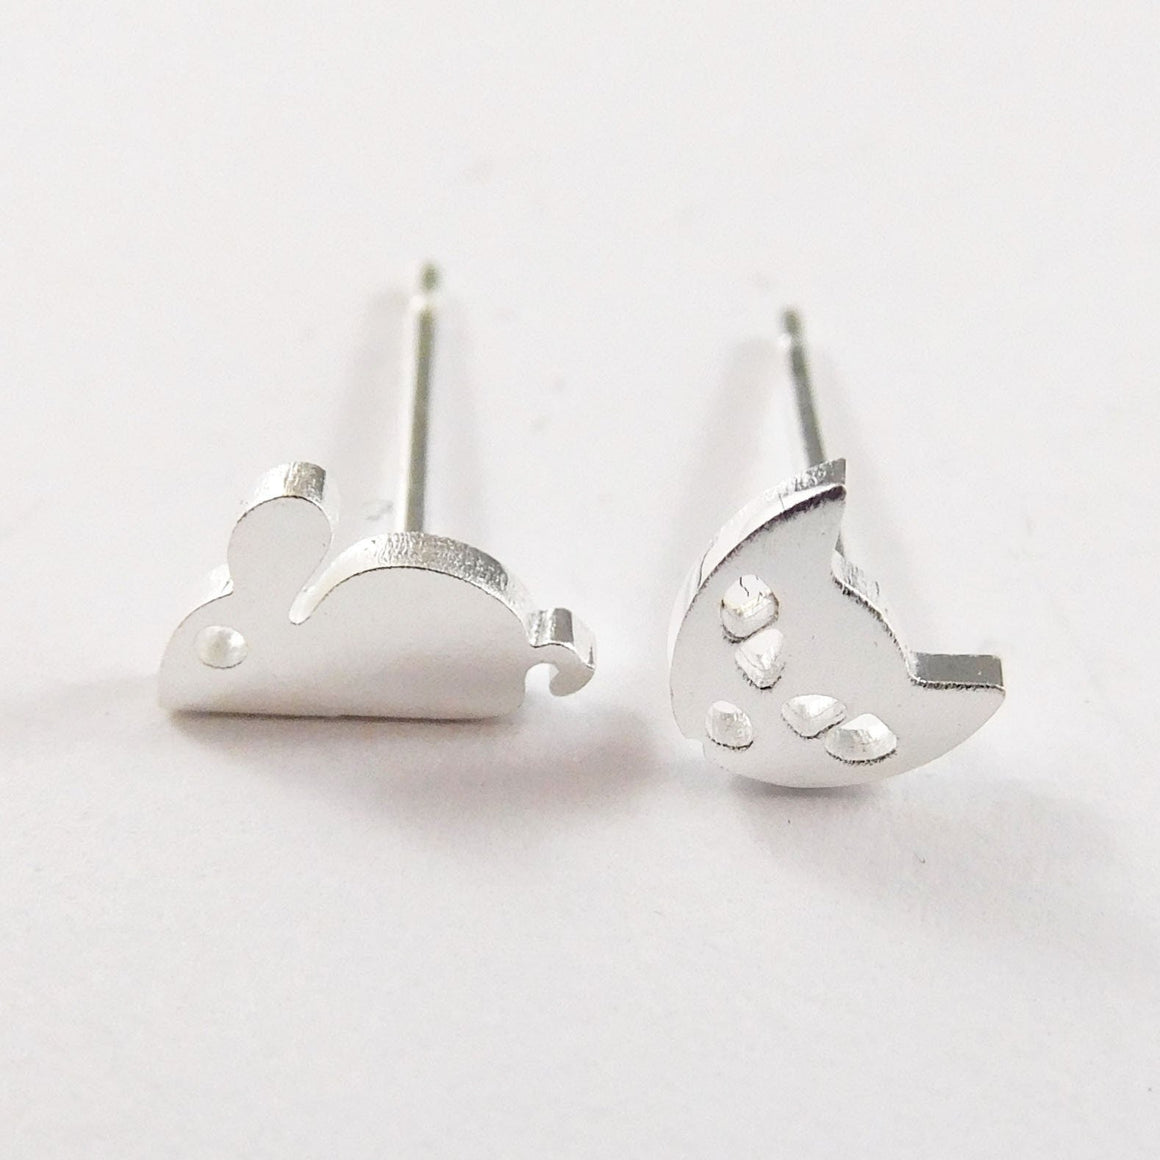 Stainless Steel Earrings - Cat & Mouse